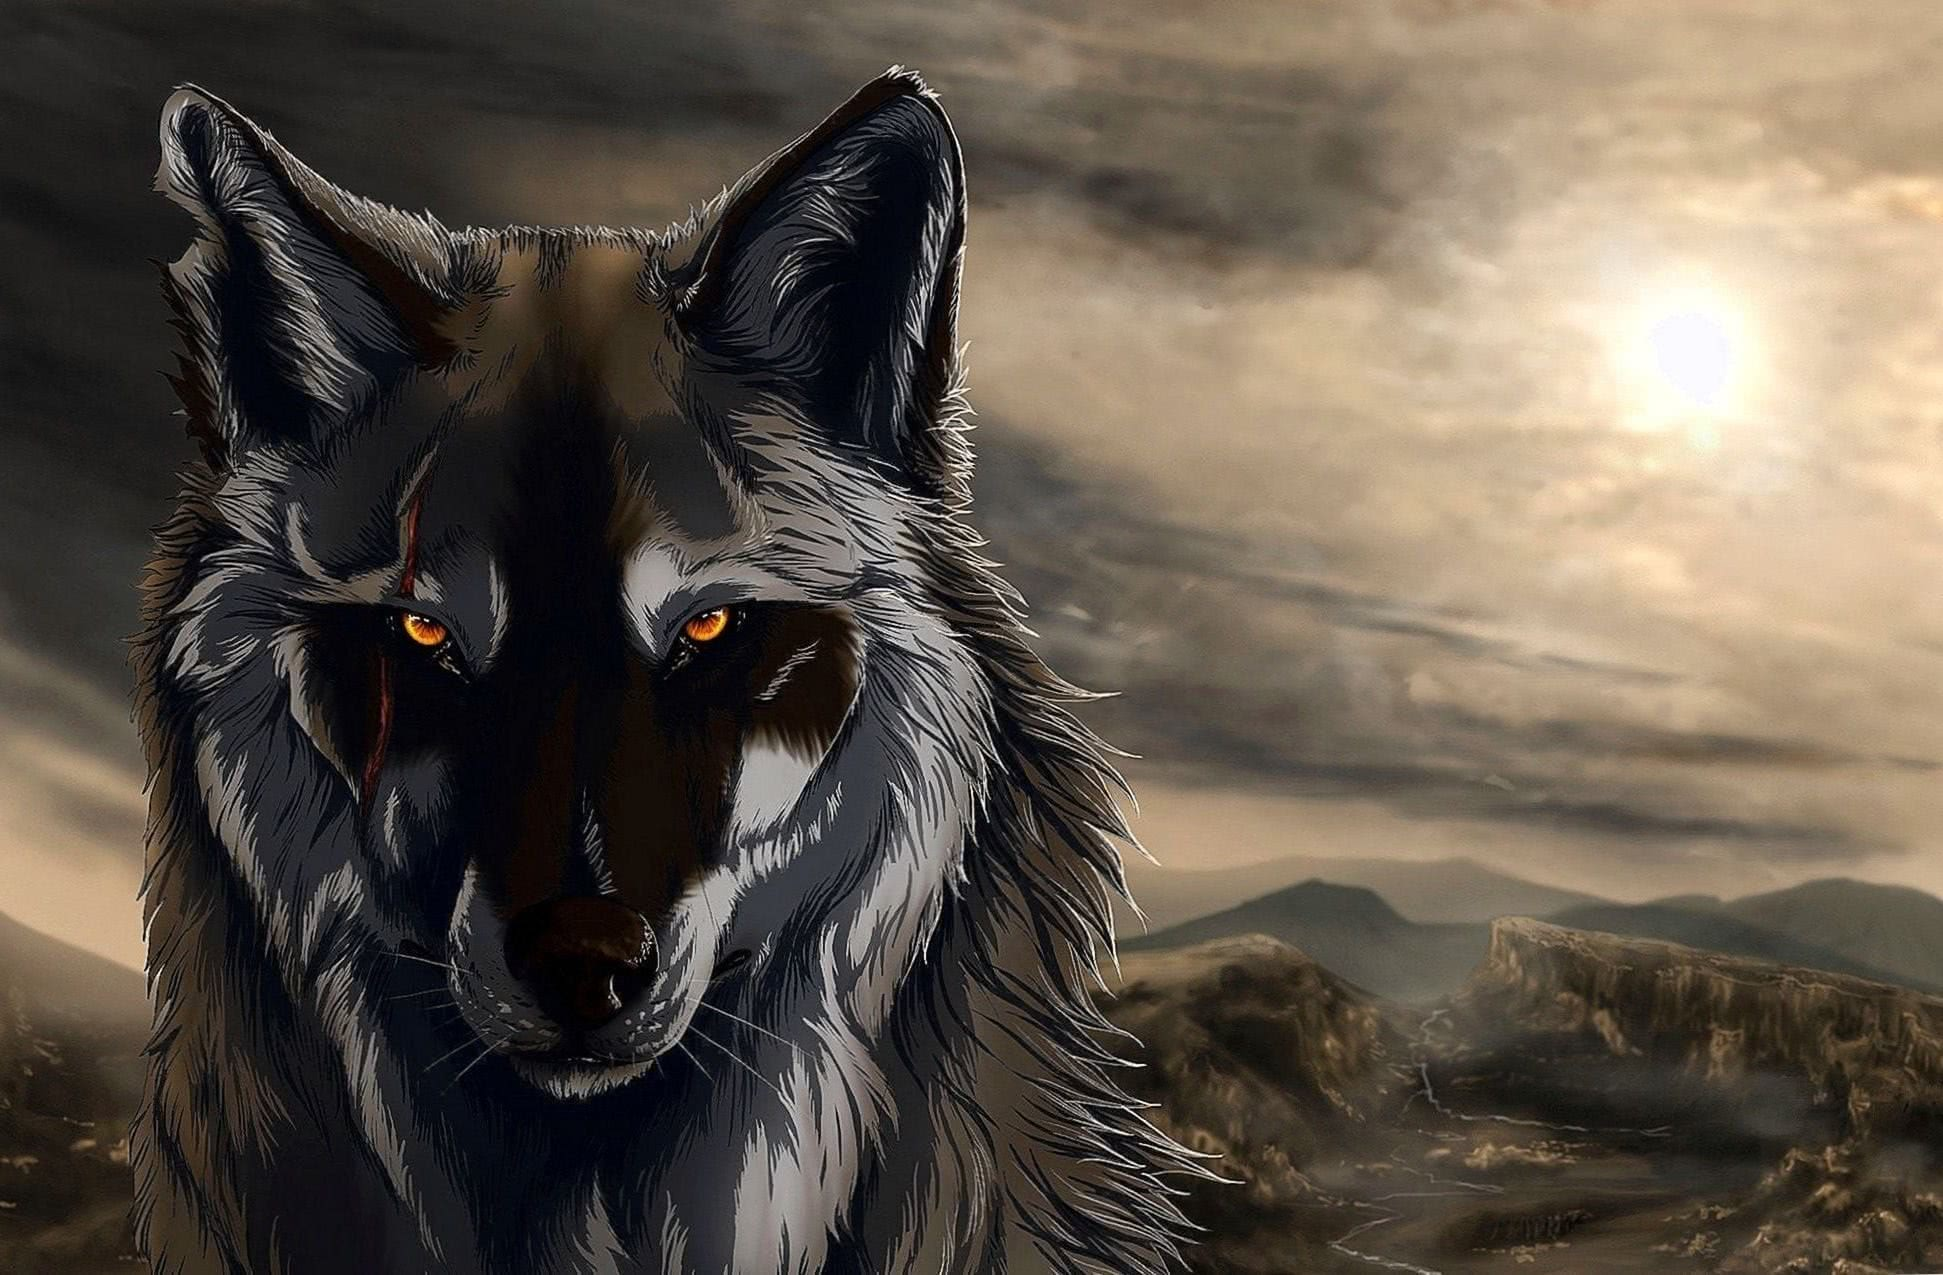 the rise of black wolf hd wallpaper aww 2 wolf wallpapers.pro